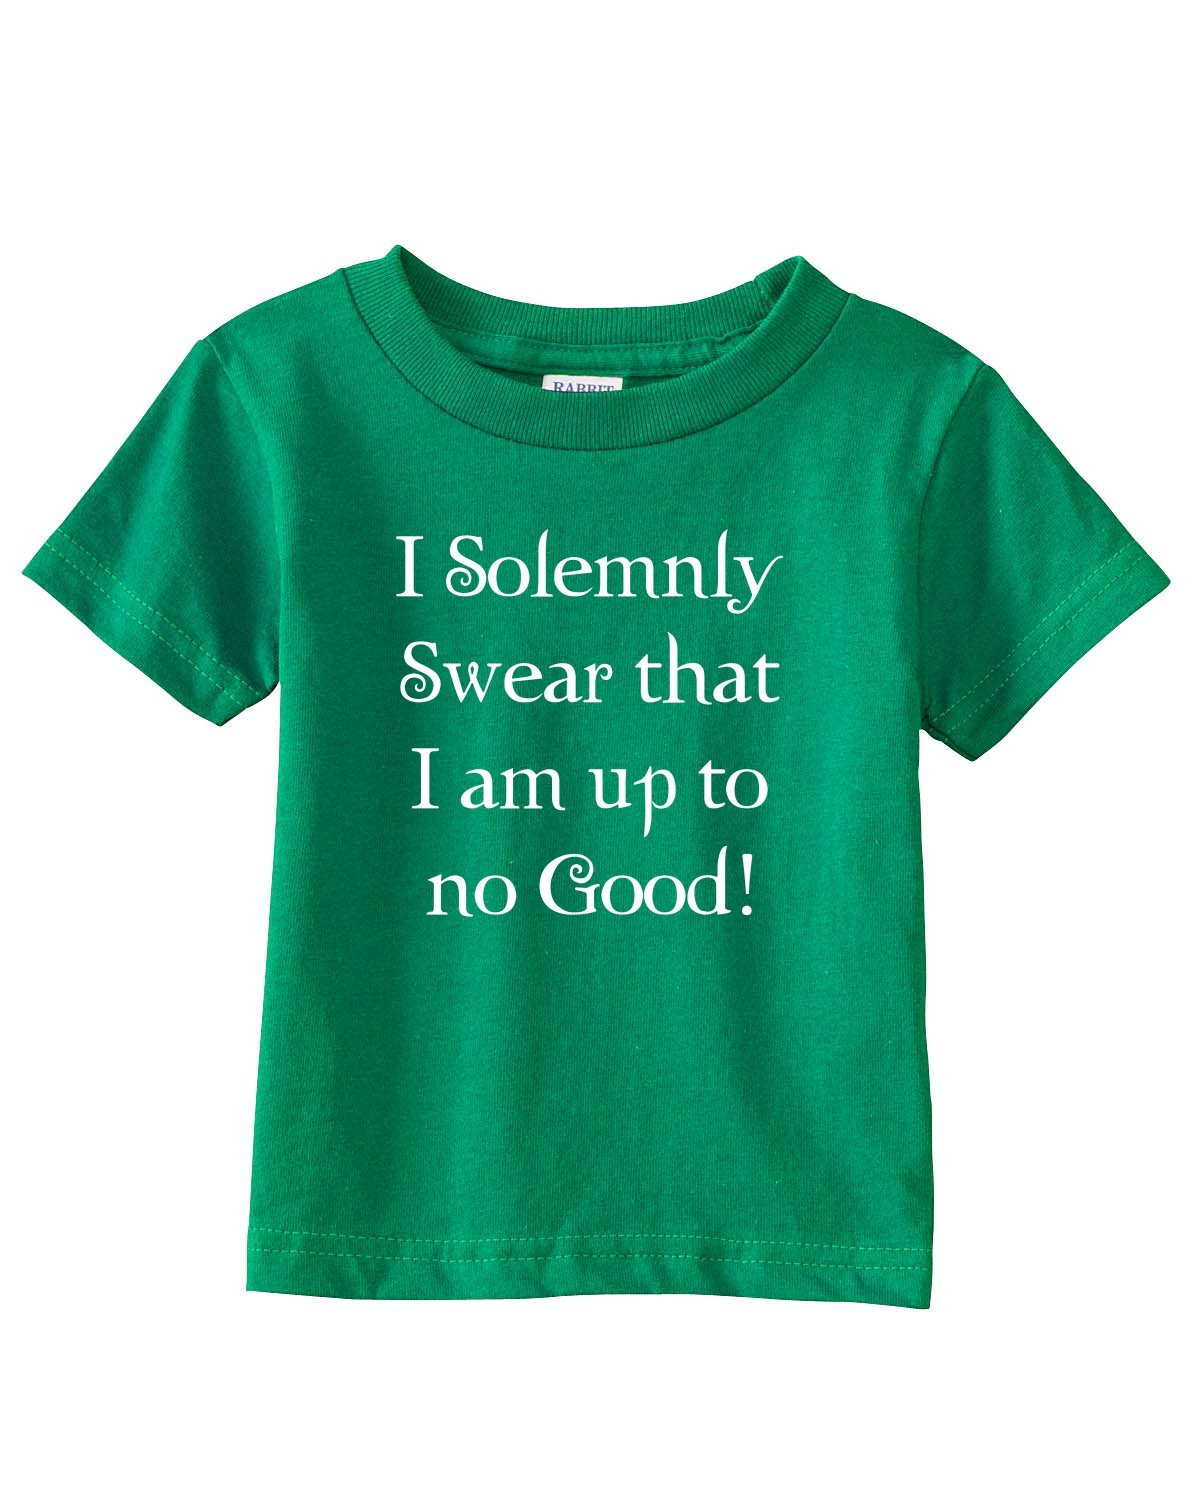 Amazon.com: I Solemnly Swear that I am up to No Good! on Infant ...